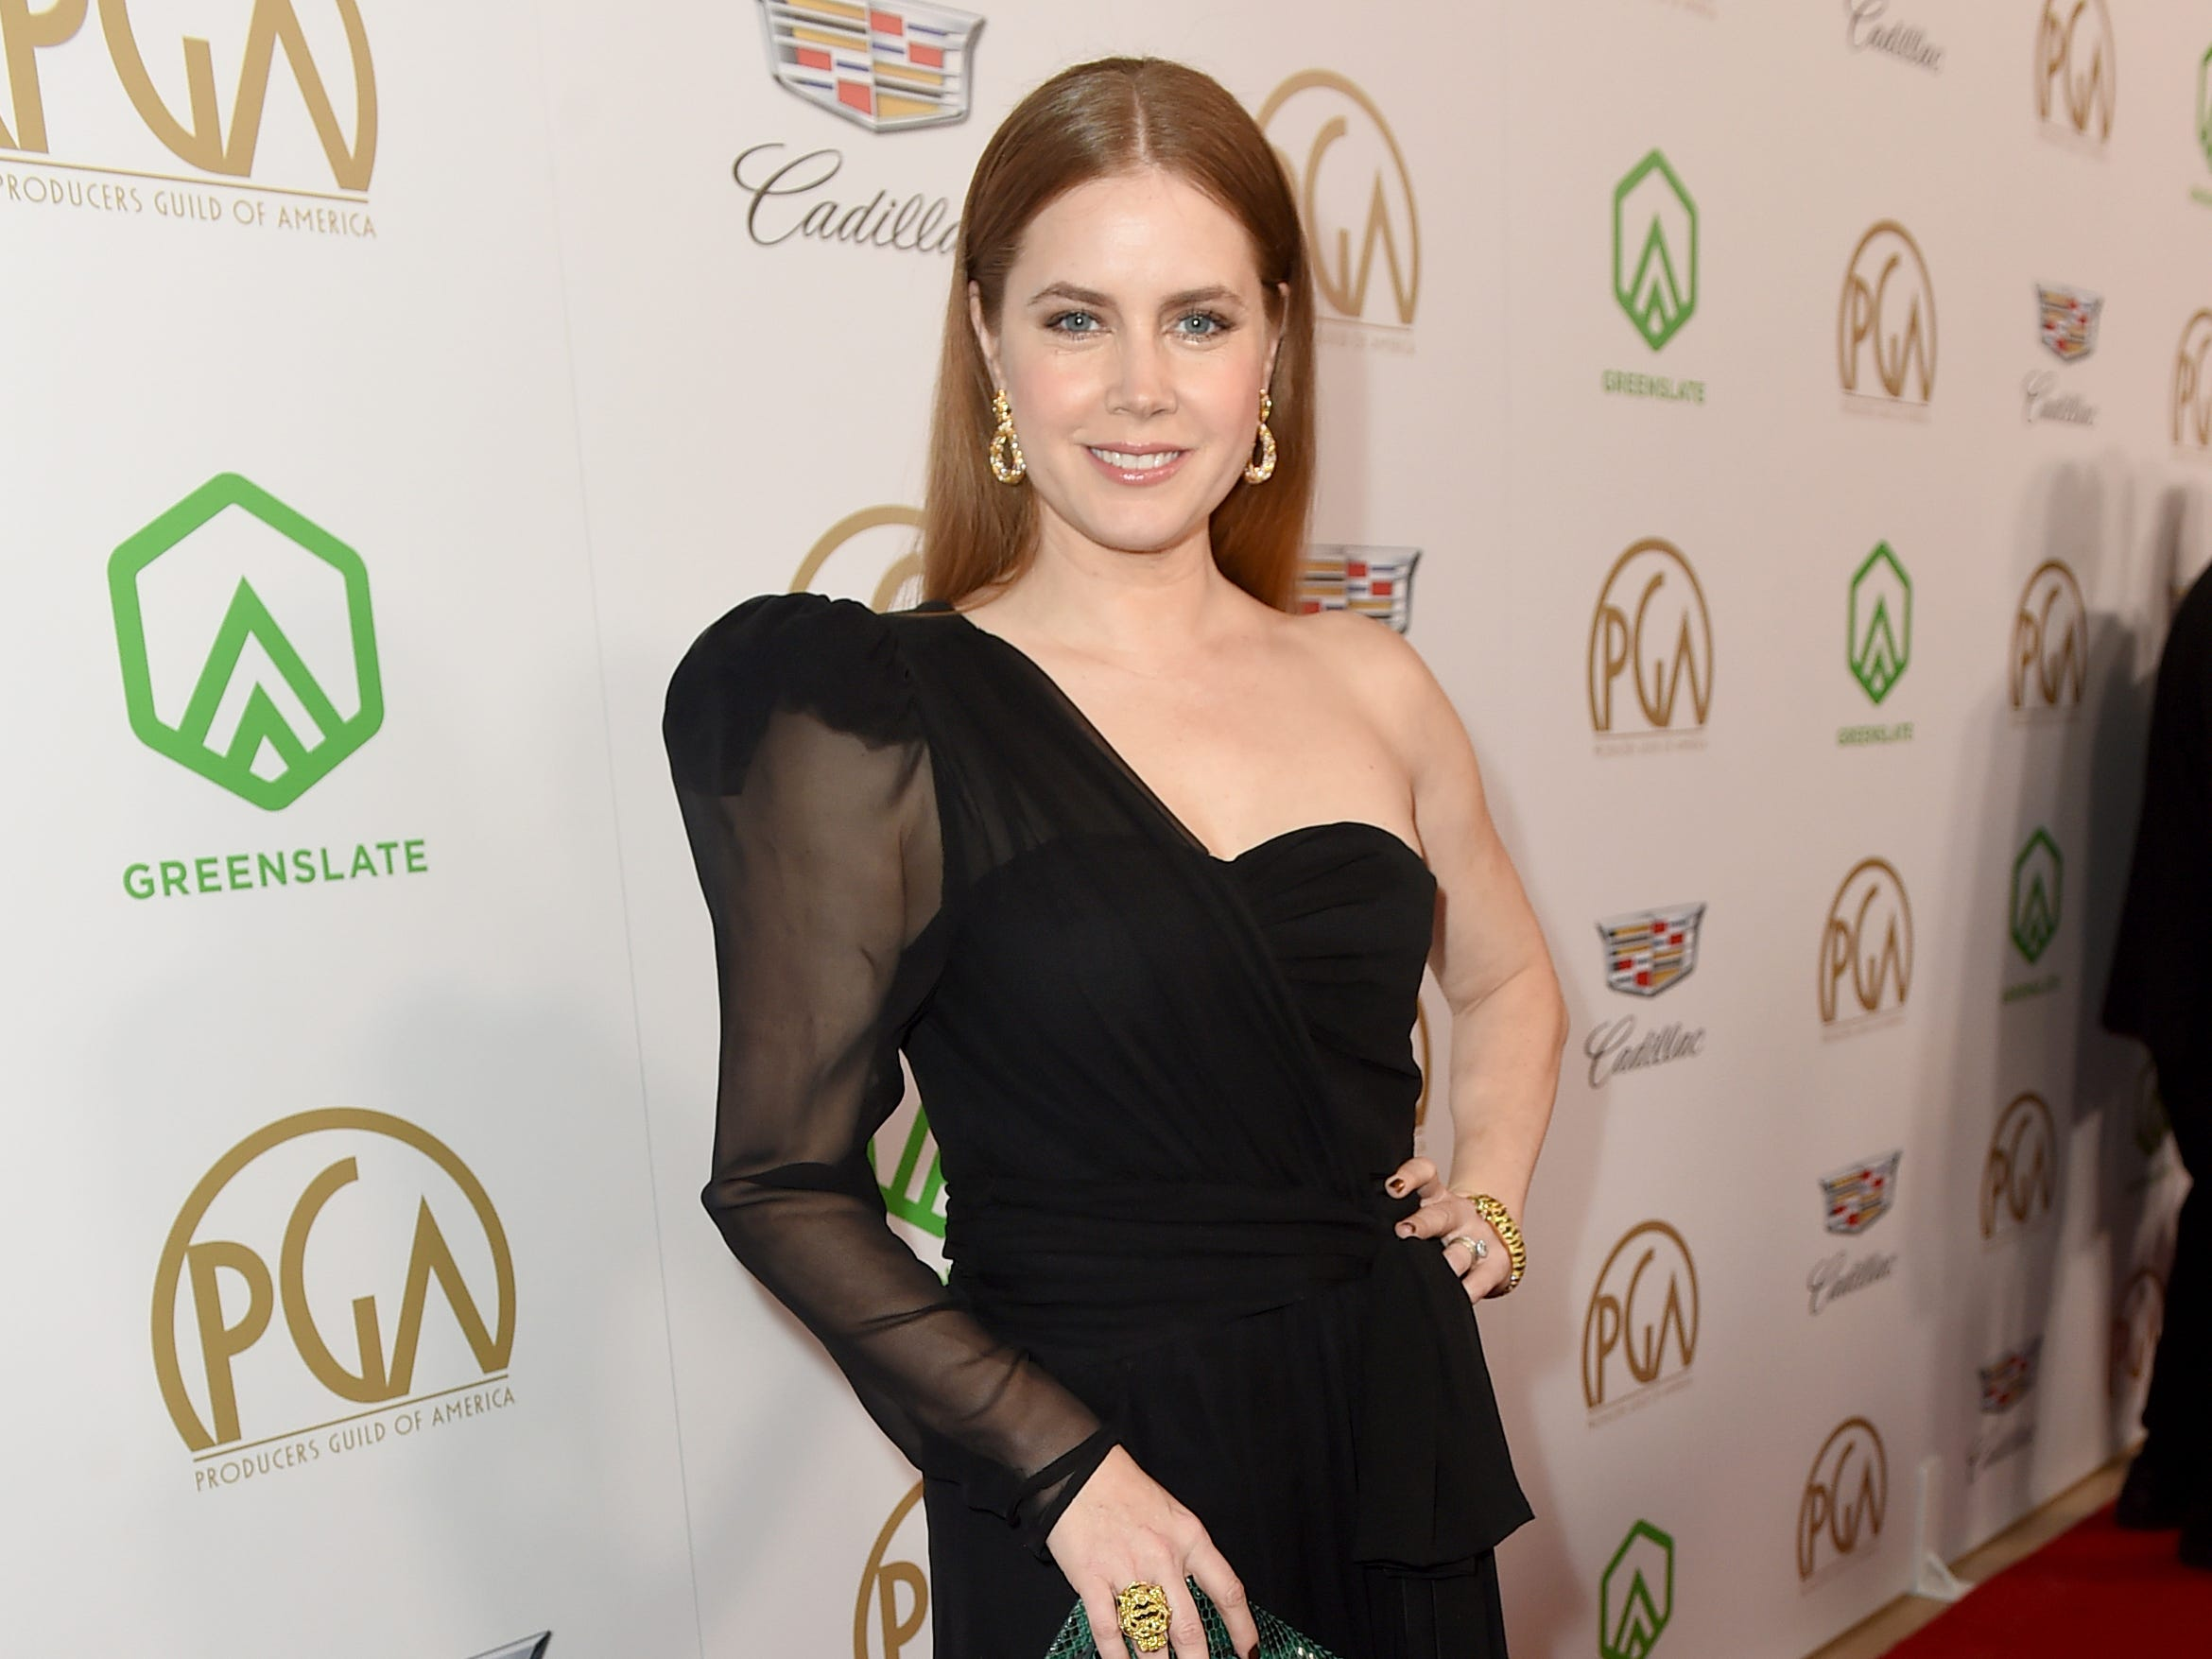 IMAGE DISTRIBUTED FOR PRODUCERS GUILD OF AMERICA - Amy Adams arrives at the 30th Producers Guild Awards presented by Cadillac at the Beverly Hilton on Saturday, Jan. 19, 2019, in Beverly Hills, Calif. (Photo by Jordan Strauss/Invision for Producers Guild of America/AP Images) ORG XMIT: CALB124